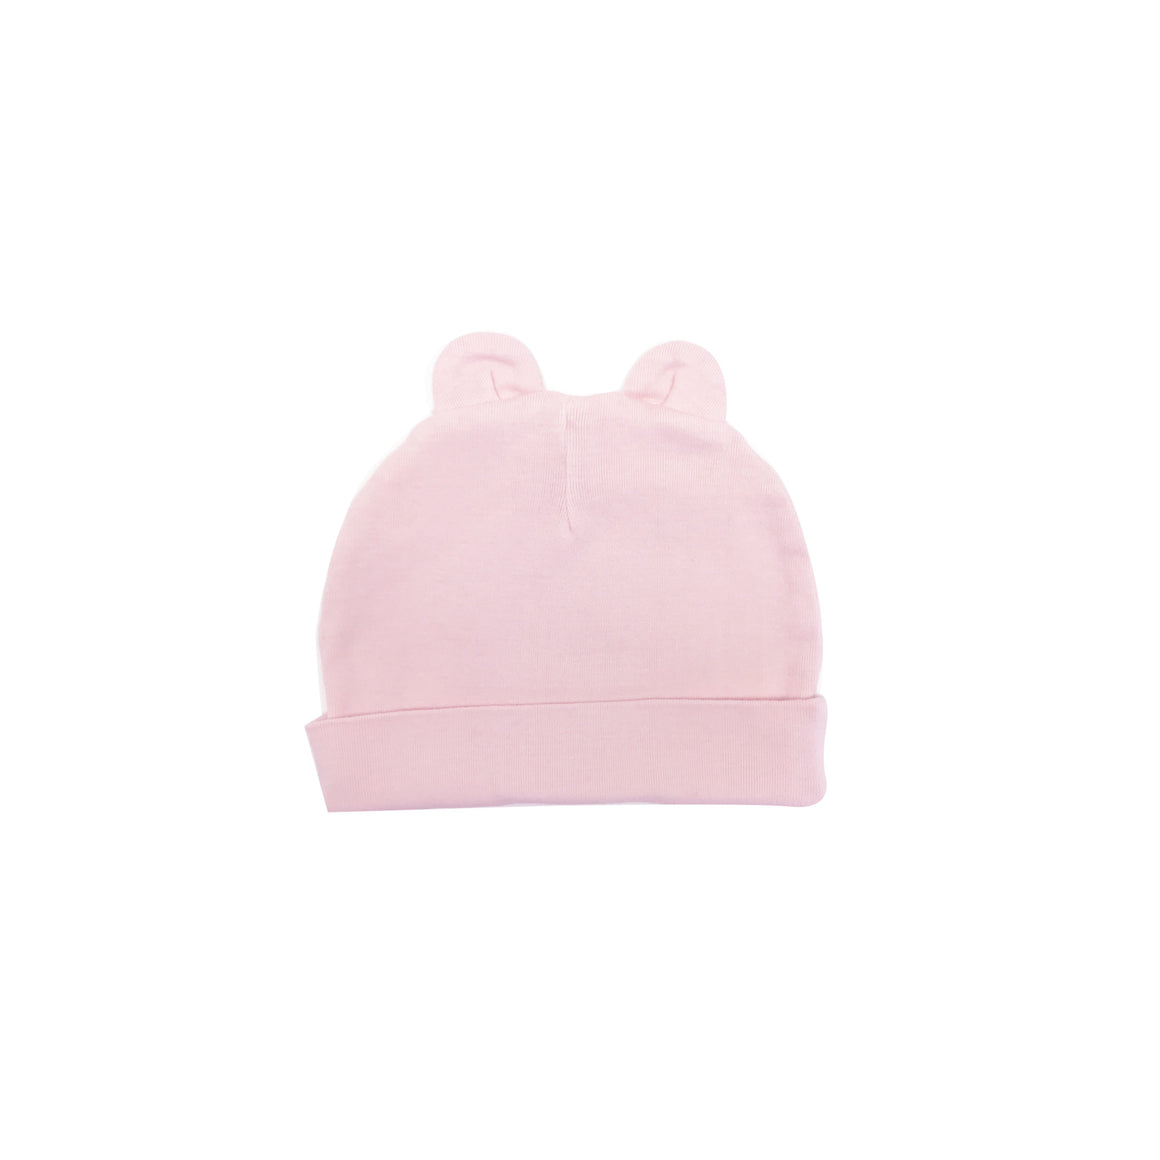 Beanie with Ears, Light Pink